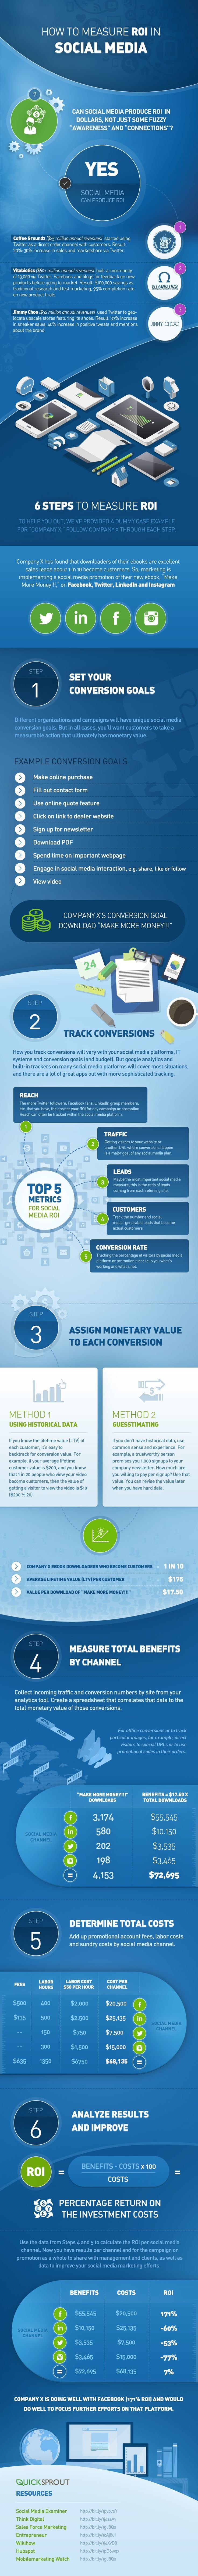 How to measure ROI in Social Media #infographic